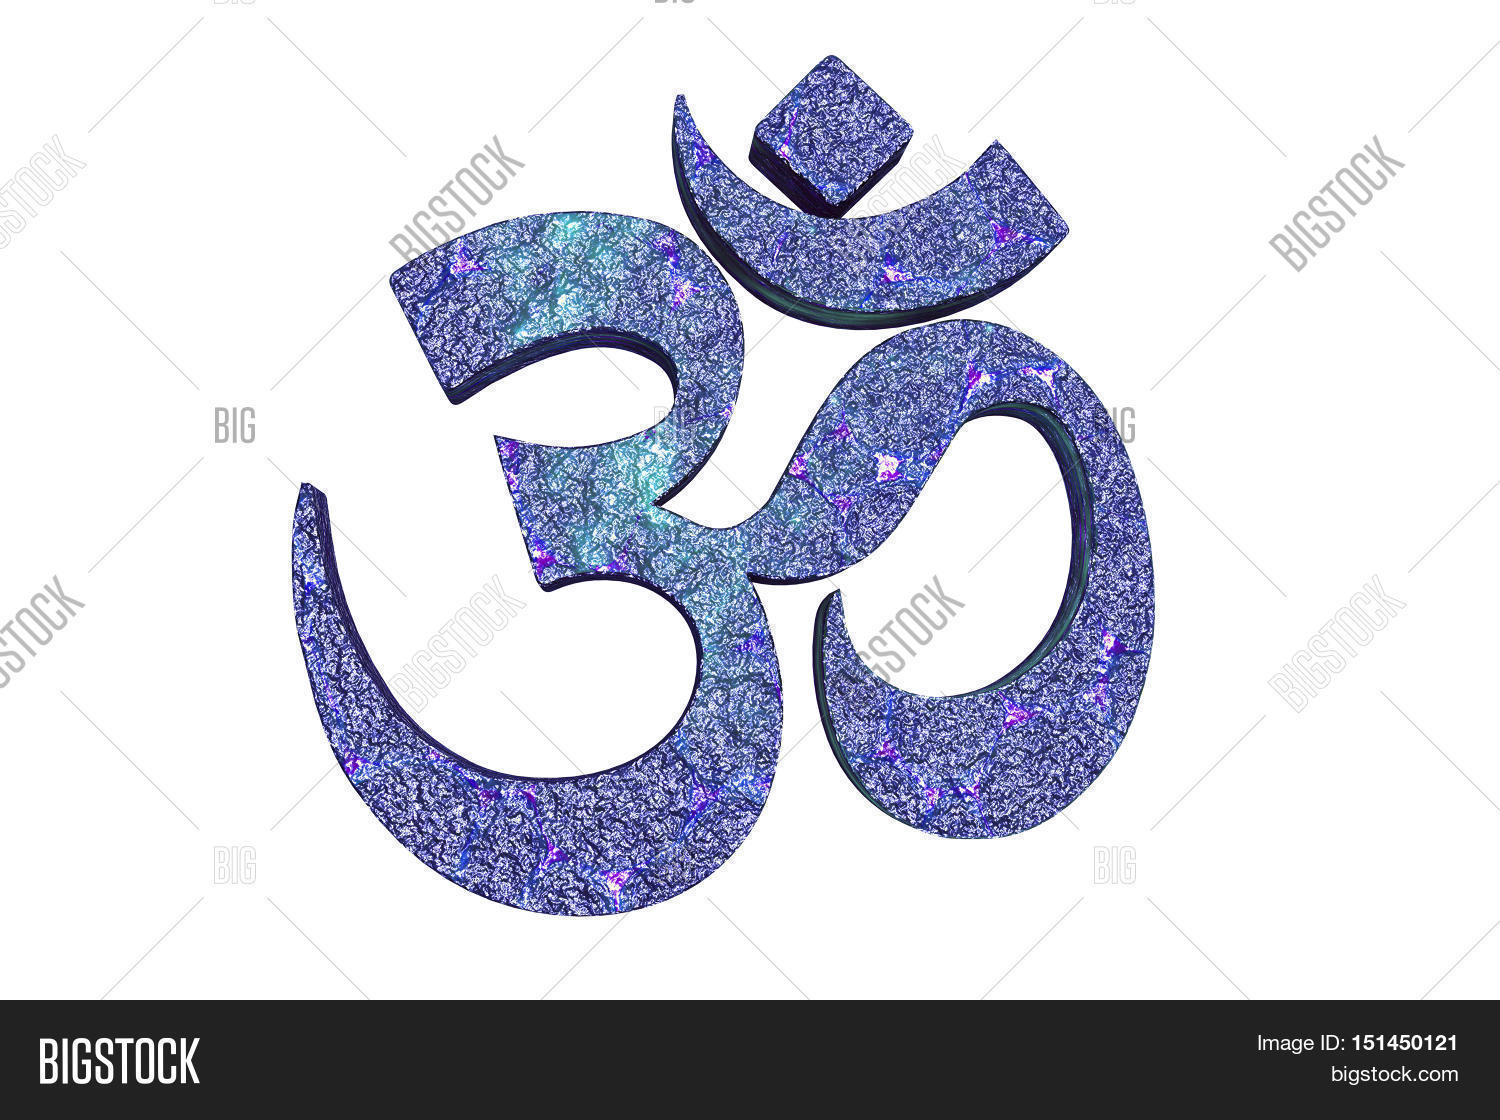 Hindu word reading om aum symbol image photo bigstock hindu word reading om or aum symbol 3d illustration it is a spiritual icon buycottarizona